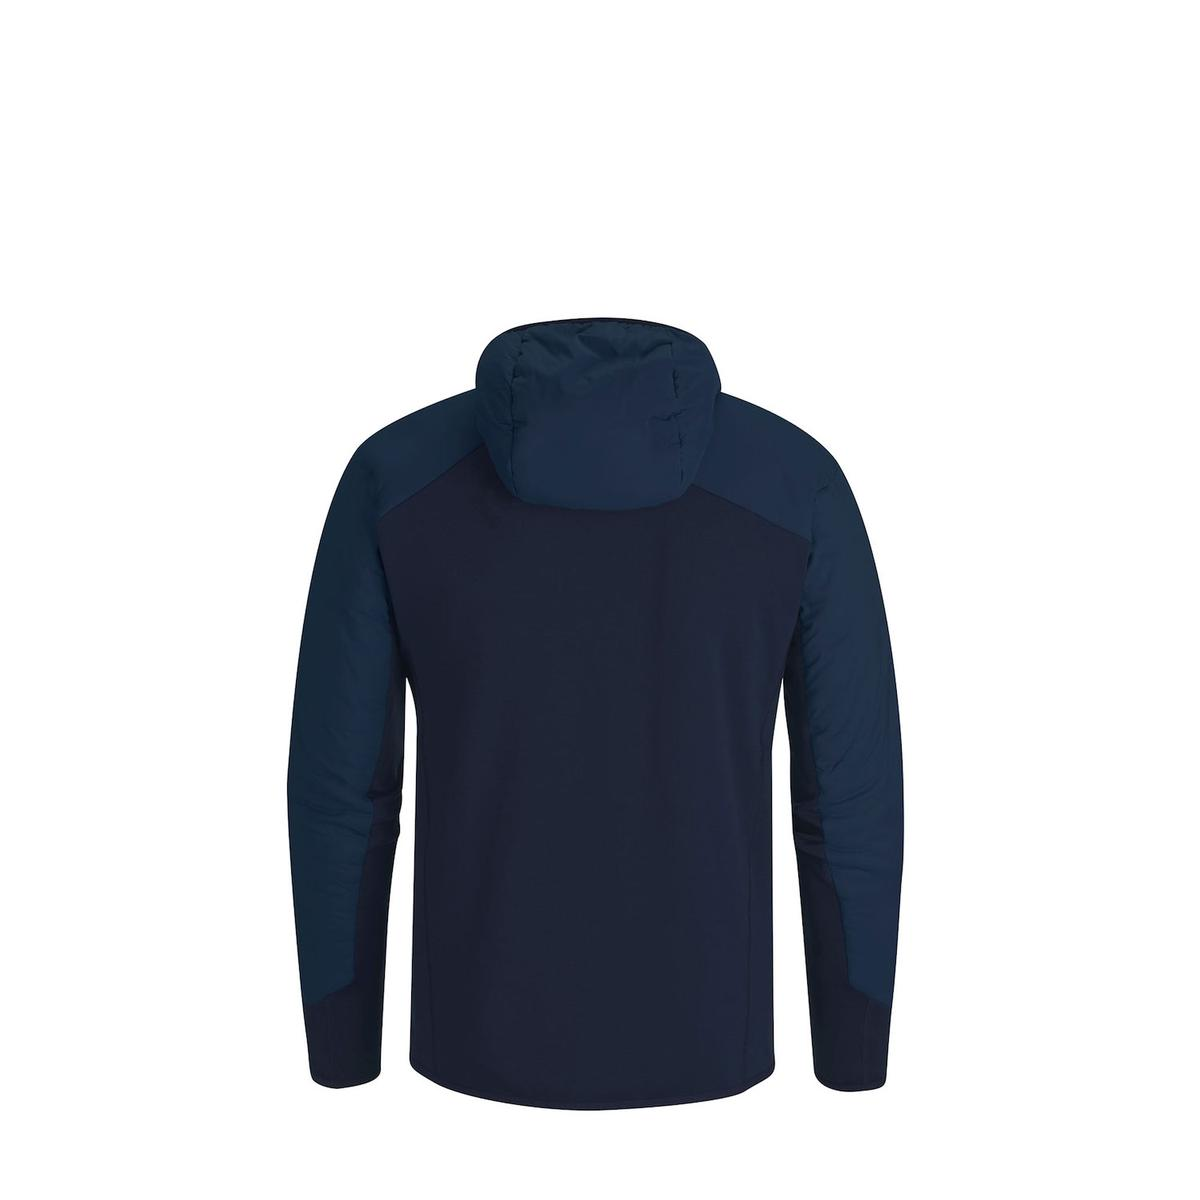 Black Diamond Development Hoody Men's